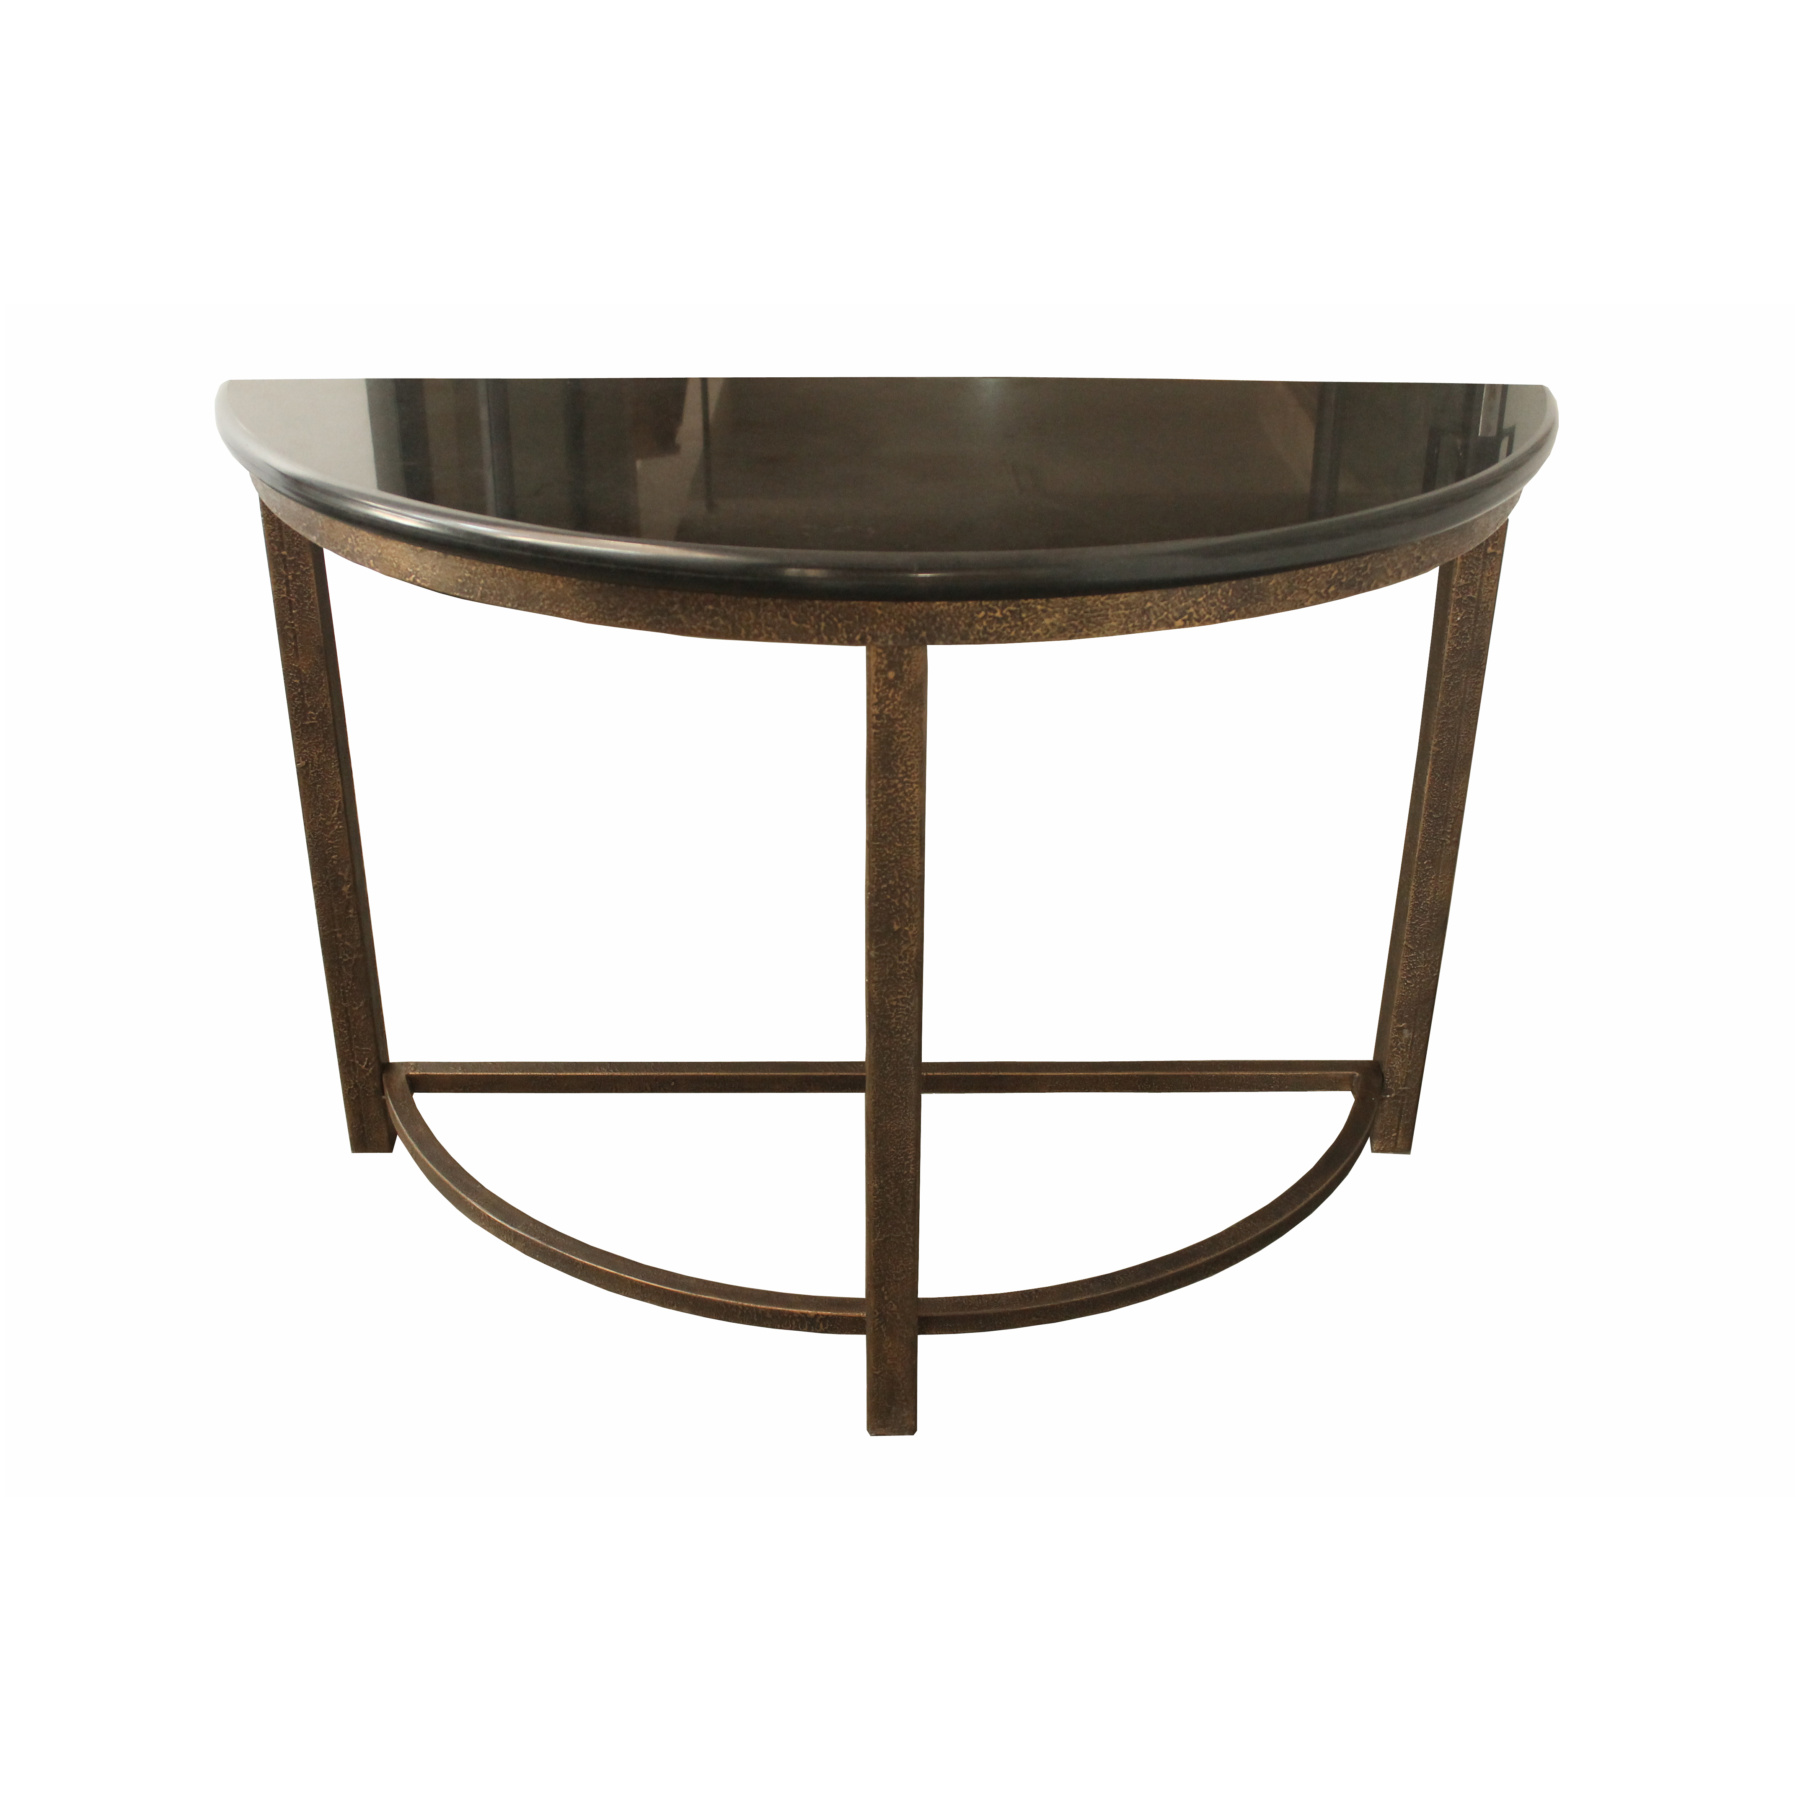 designe gallerie half round metal console accent table circle inch wide sliding barn door patio umbrella bunnings small outdoor cover chairs kids lamp bedroom furniture kijiji